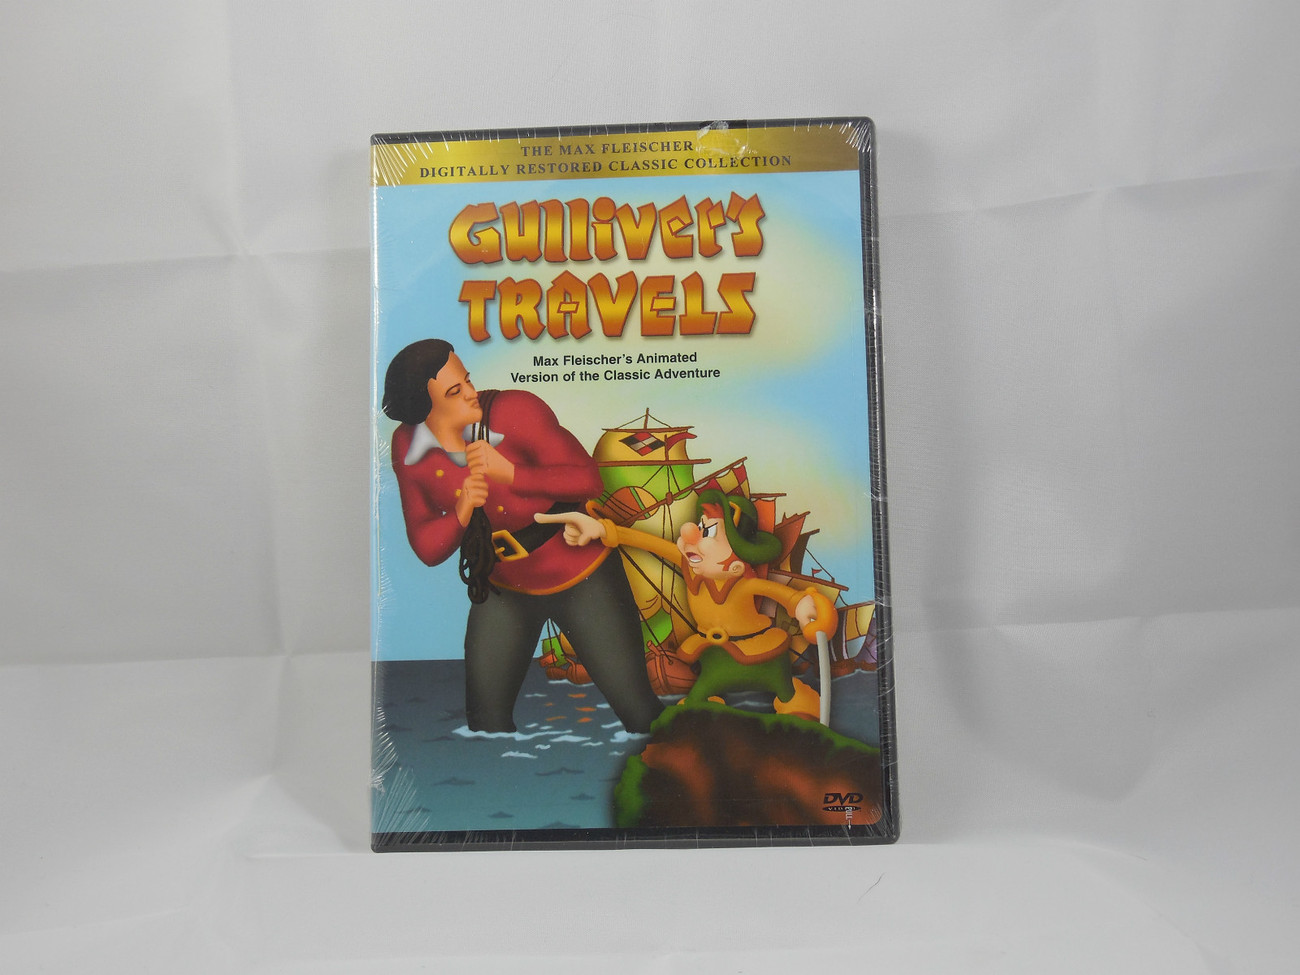 Primary image for Gulliver's Travels (DVD, 2002, The Max Fleischer Digitally Restored Classic...